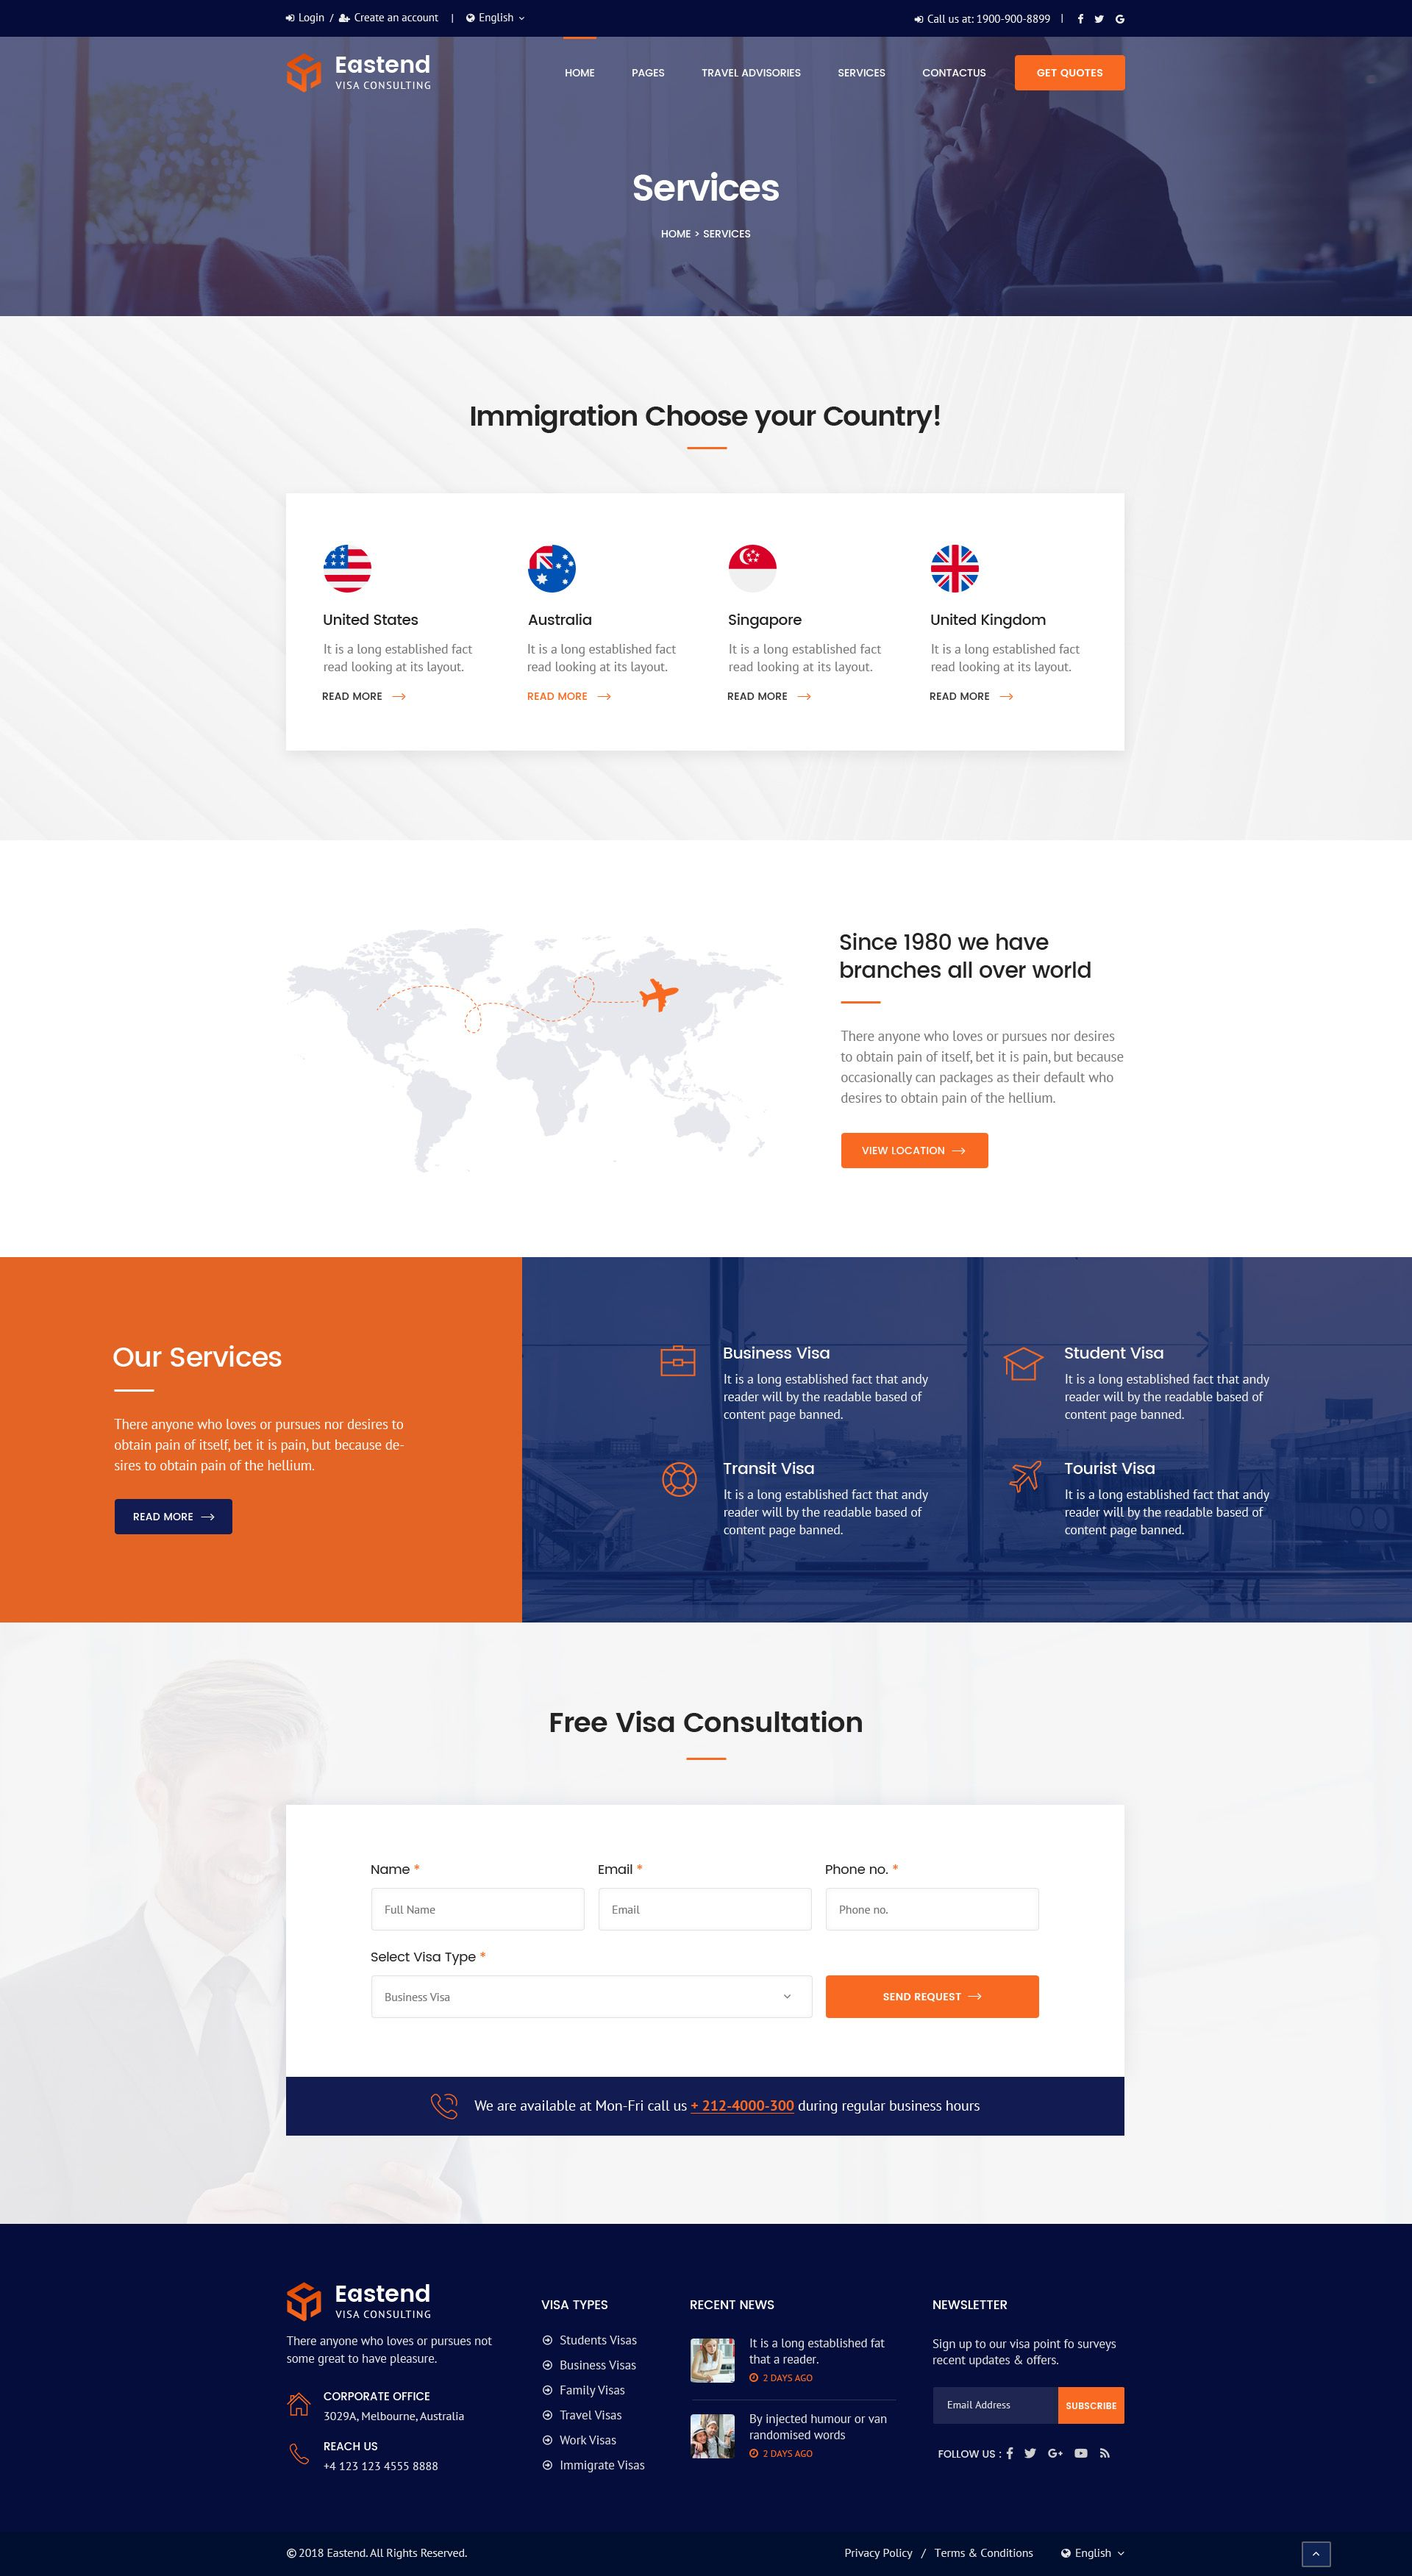 Eastend - Visa Immigration Consulting PSD Template